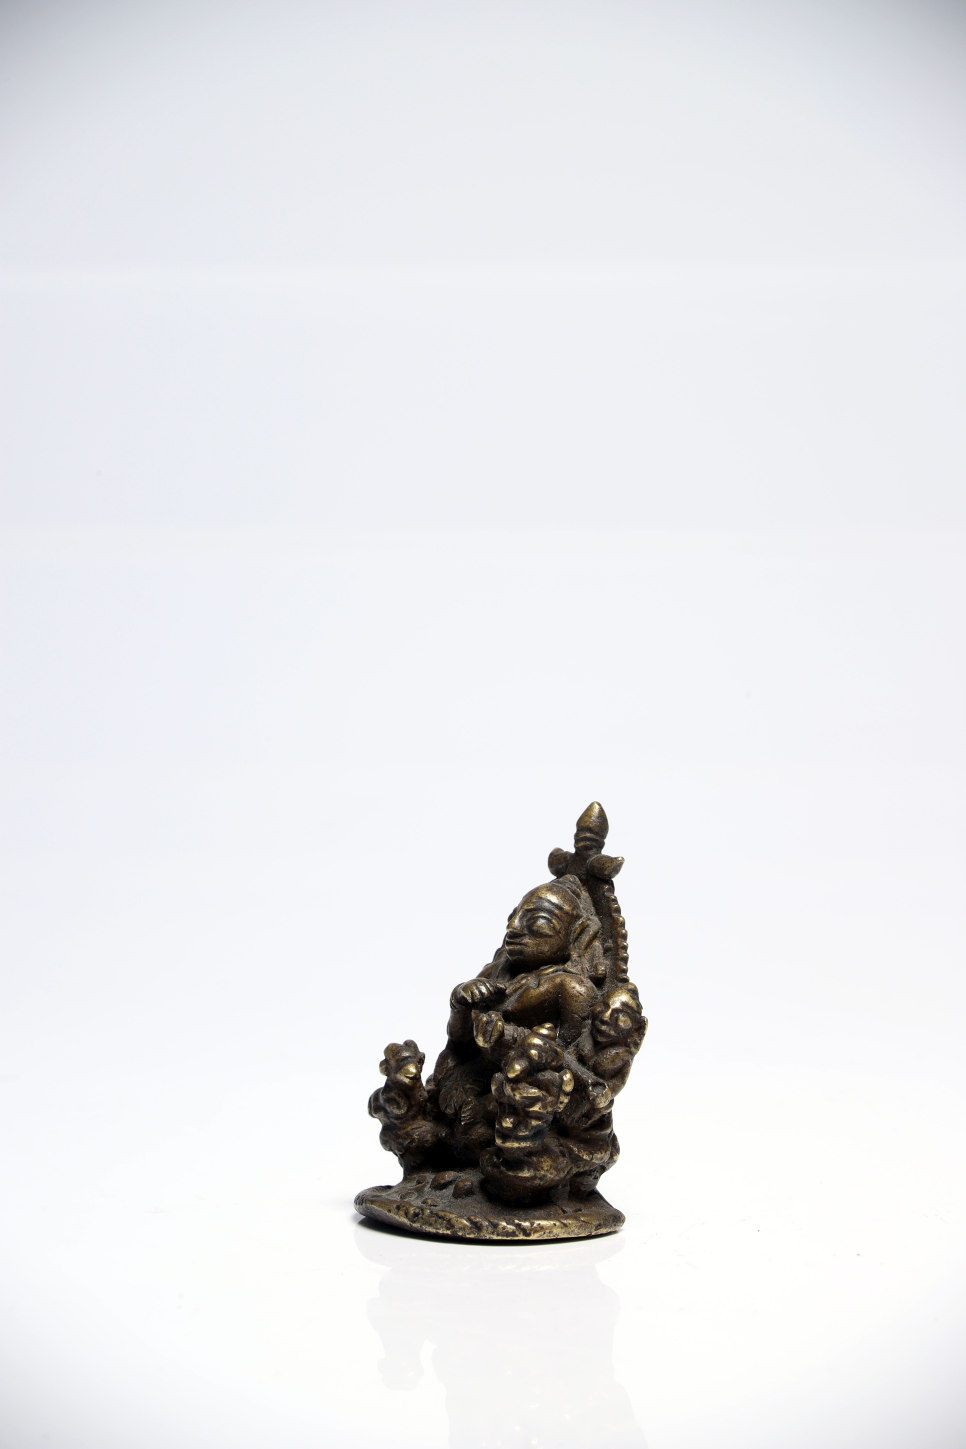 Lot 48 - Shiva and familyBronzeIndia18th ctH: 6,5 cmA small statue of a seated Shiva surrounded by his